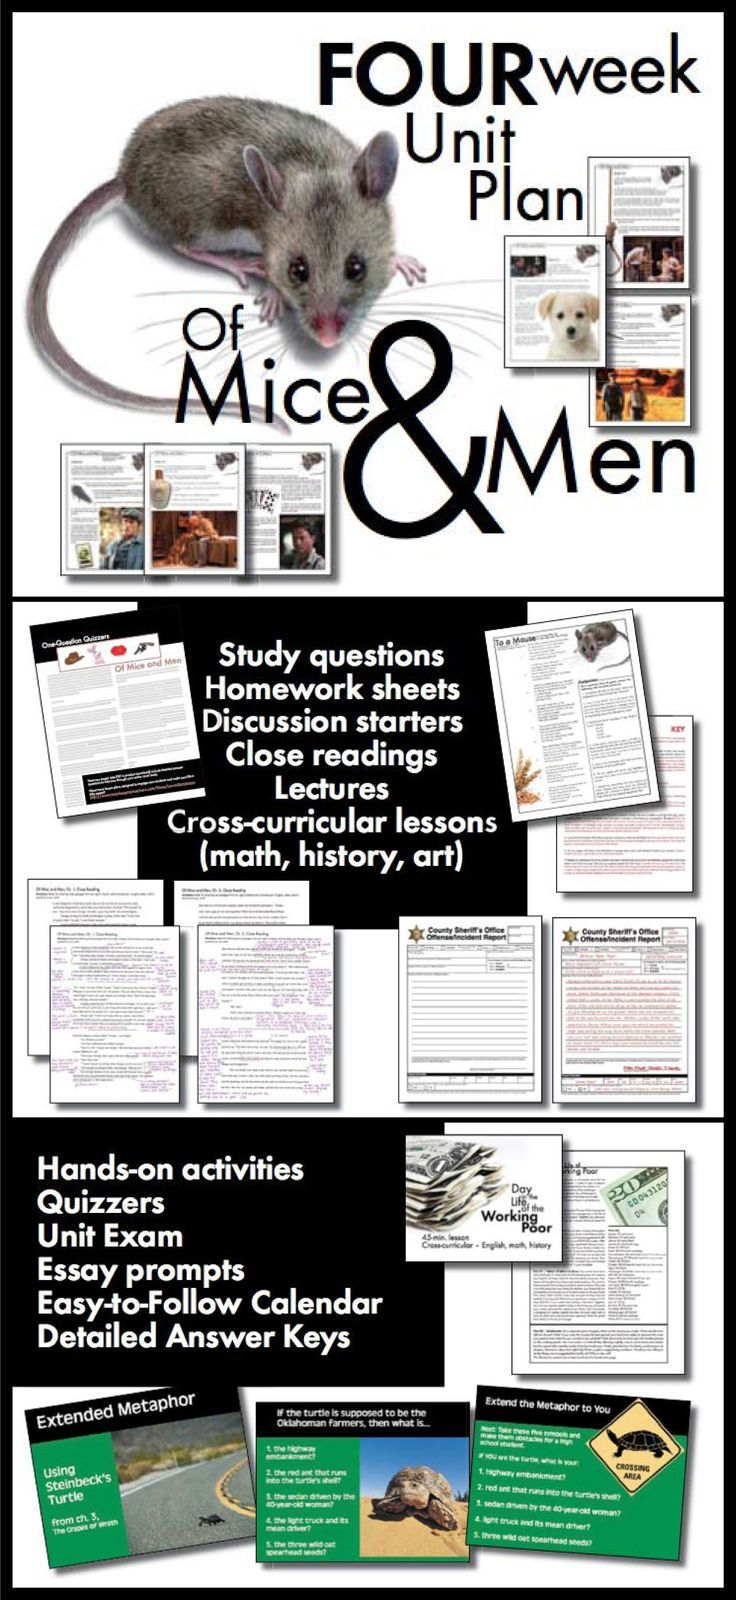 best images about classroom of mice and men of mice and men unit plan four full weeks of dynamic lessons ccss